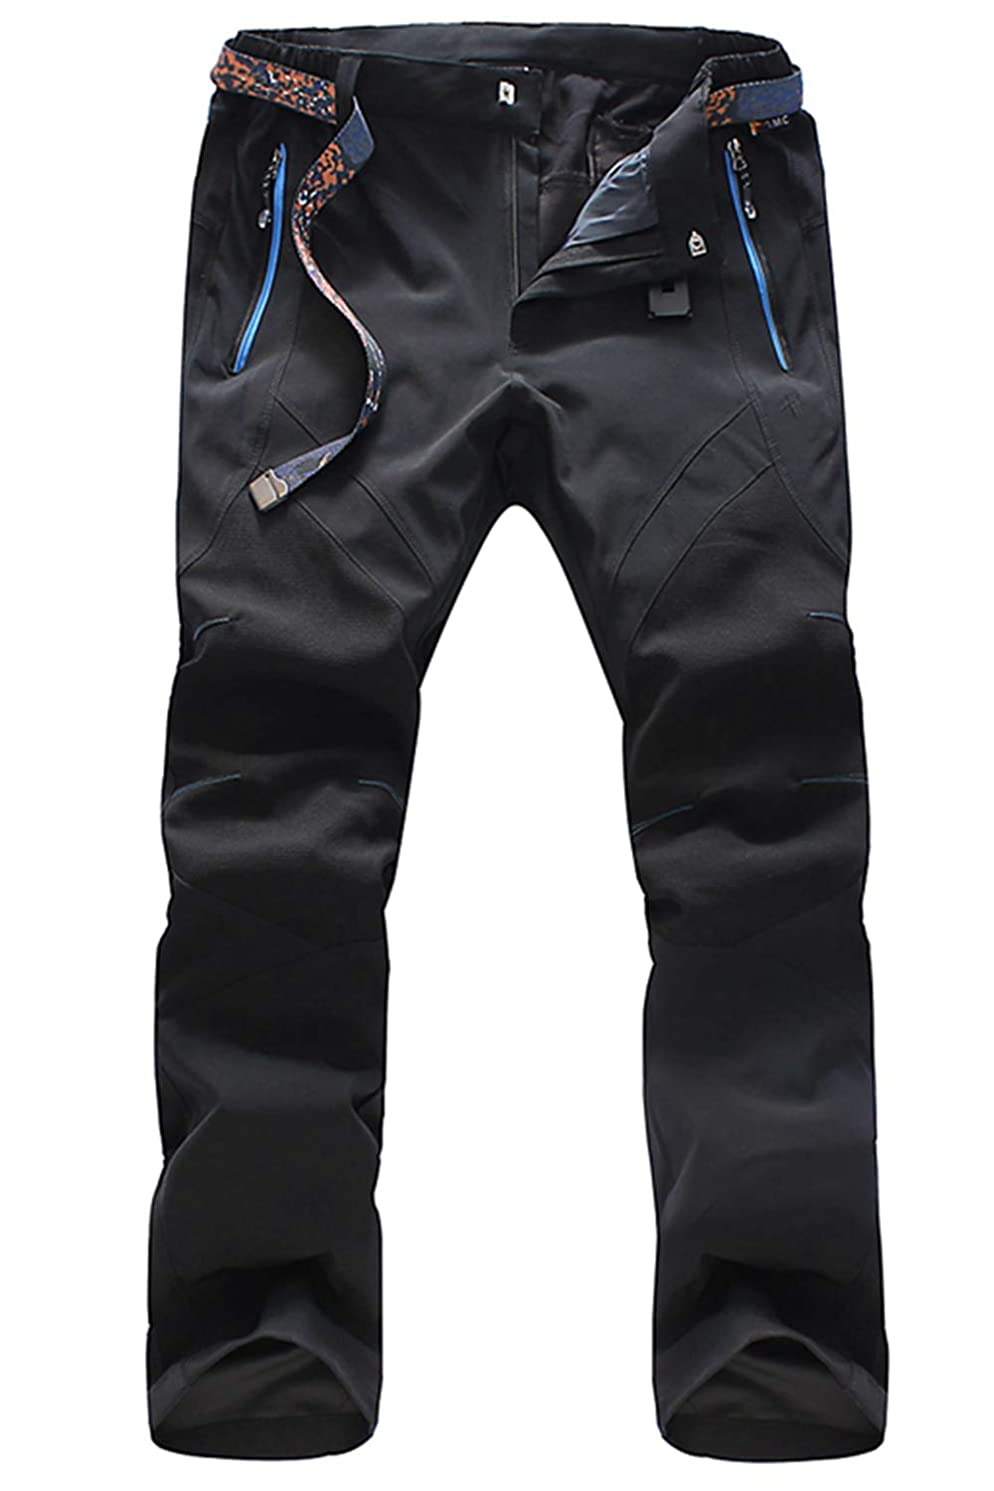 MAGCOMSEN Men's Outdoor Quick Dry Pants Zipper Pockets Lightweight Windproof Hiking Mountain Pants with Belt